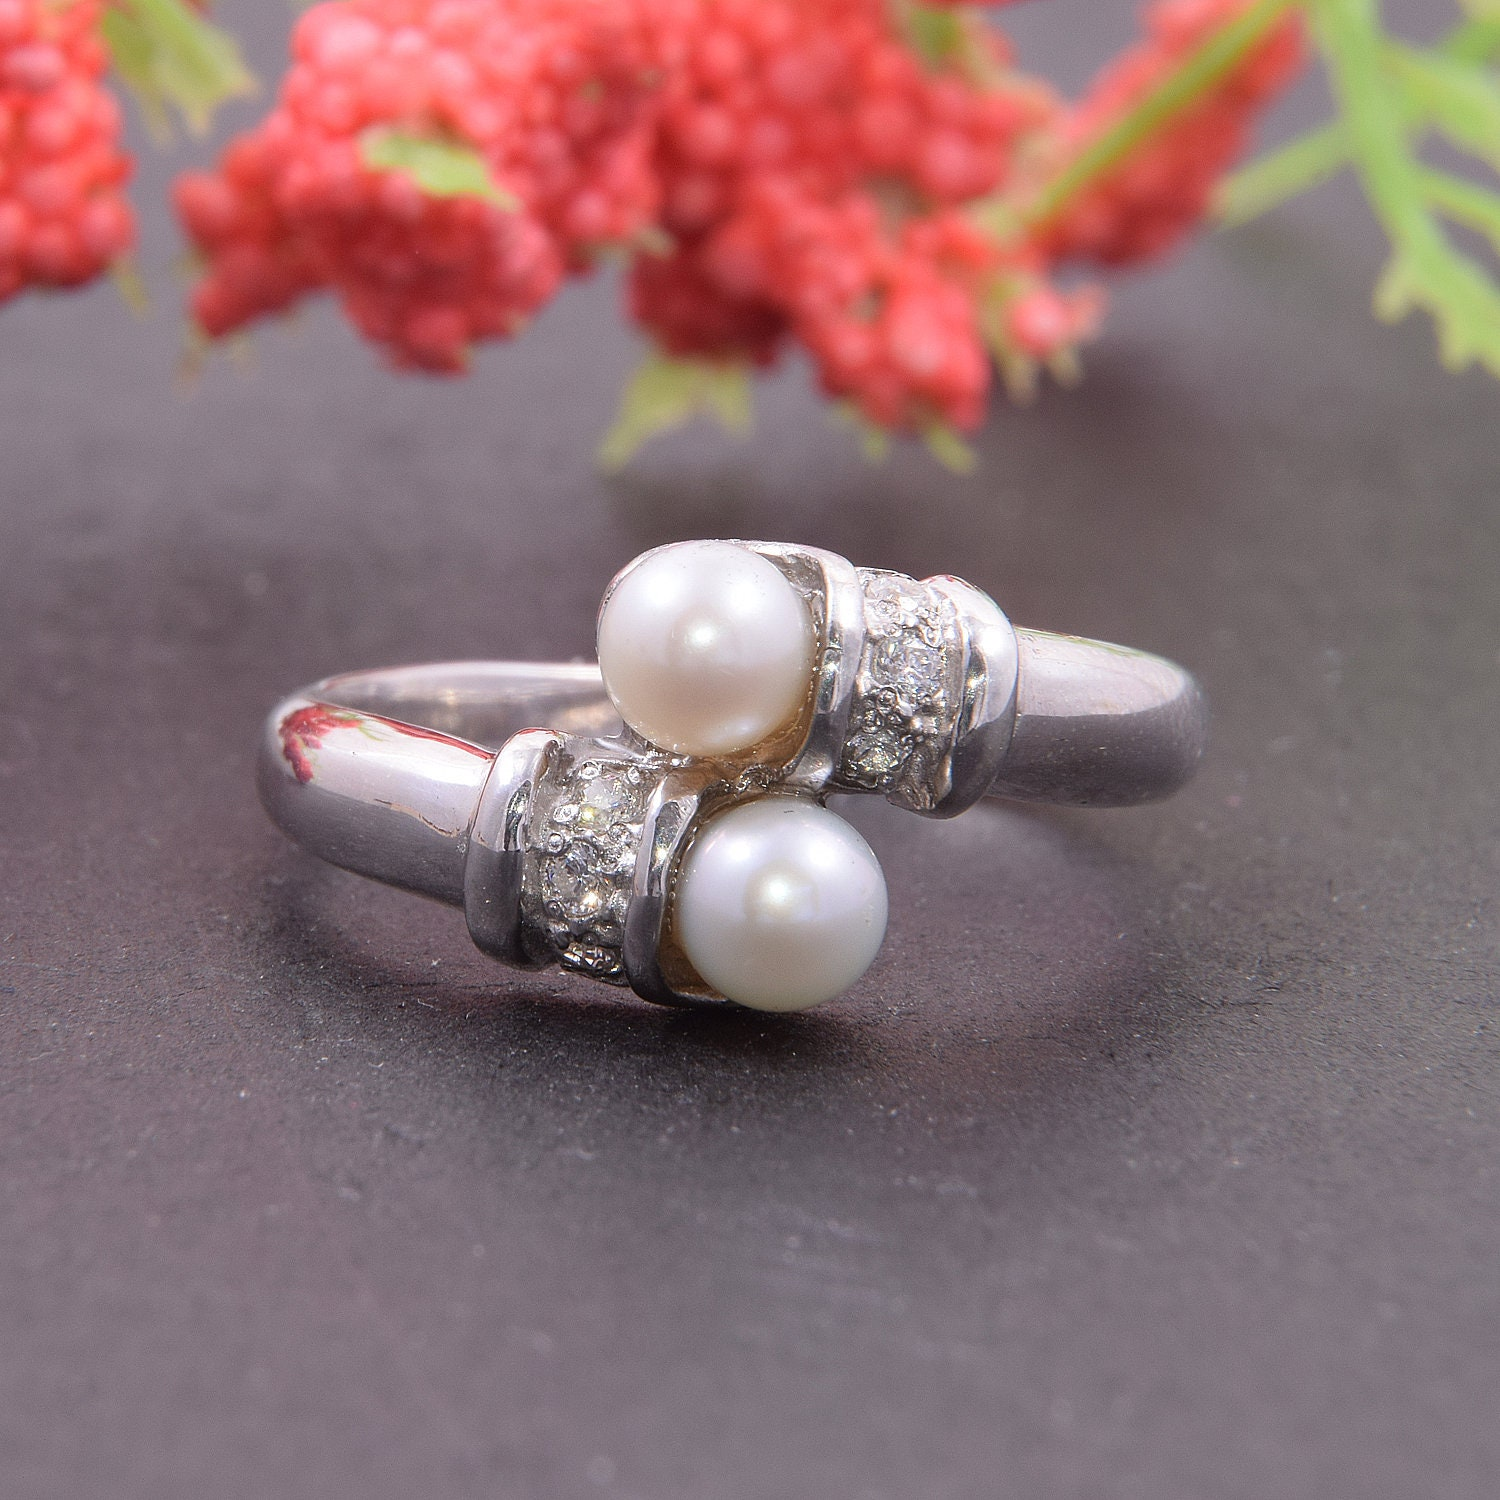 Pearl ring, Stackable ring, Elegant ring, Woman silver ring, Pearl silver ring, White pearl ring, Unique silver ring, Promise silver ring